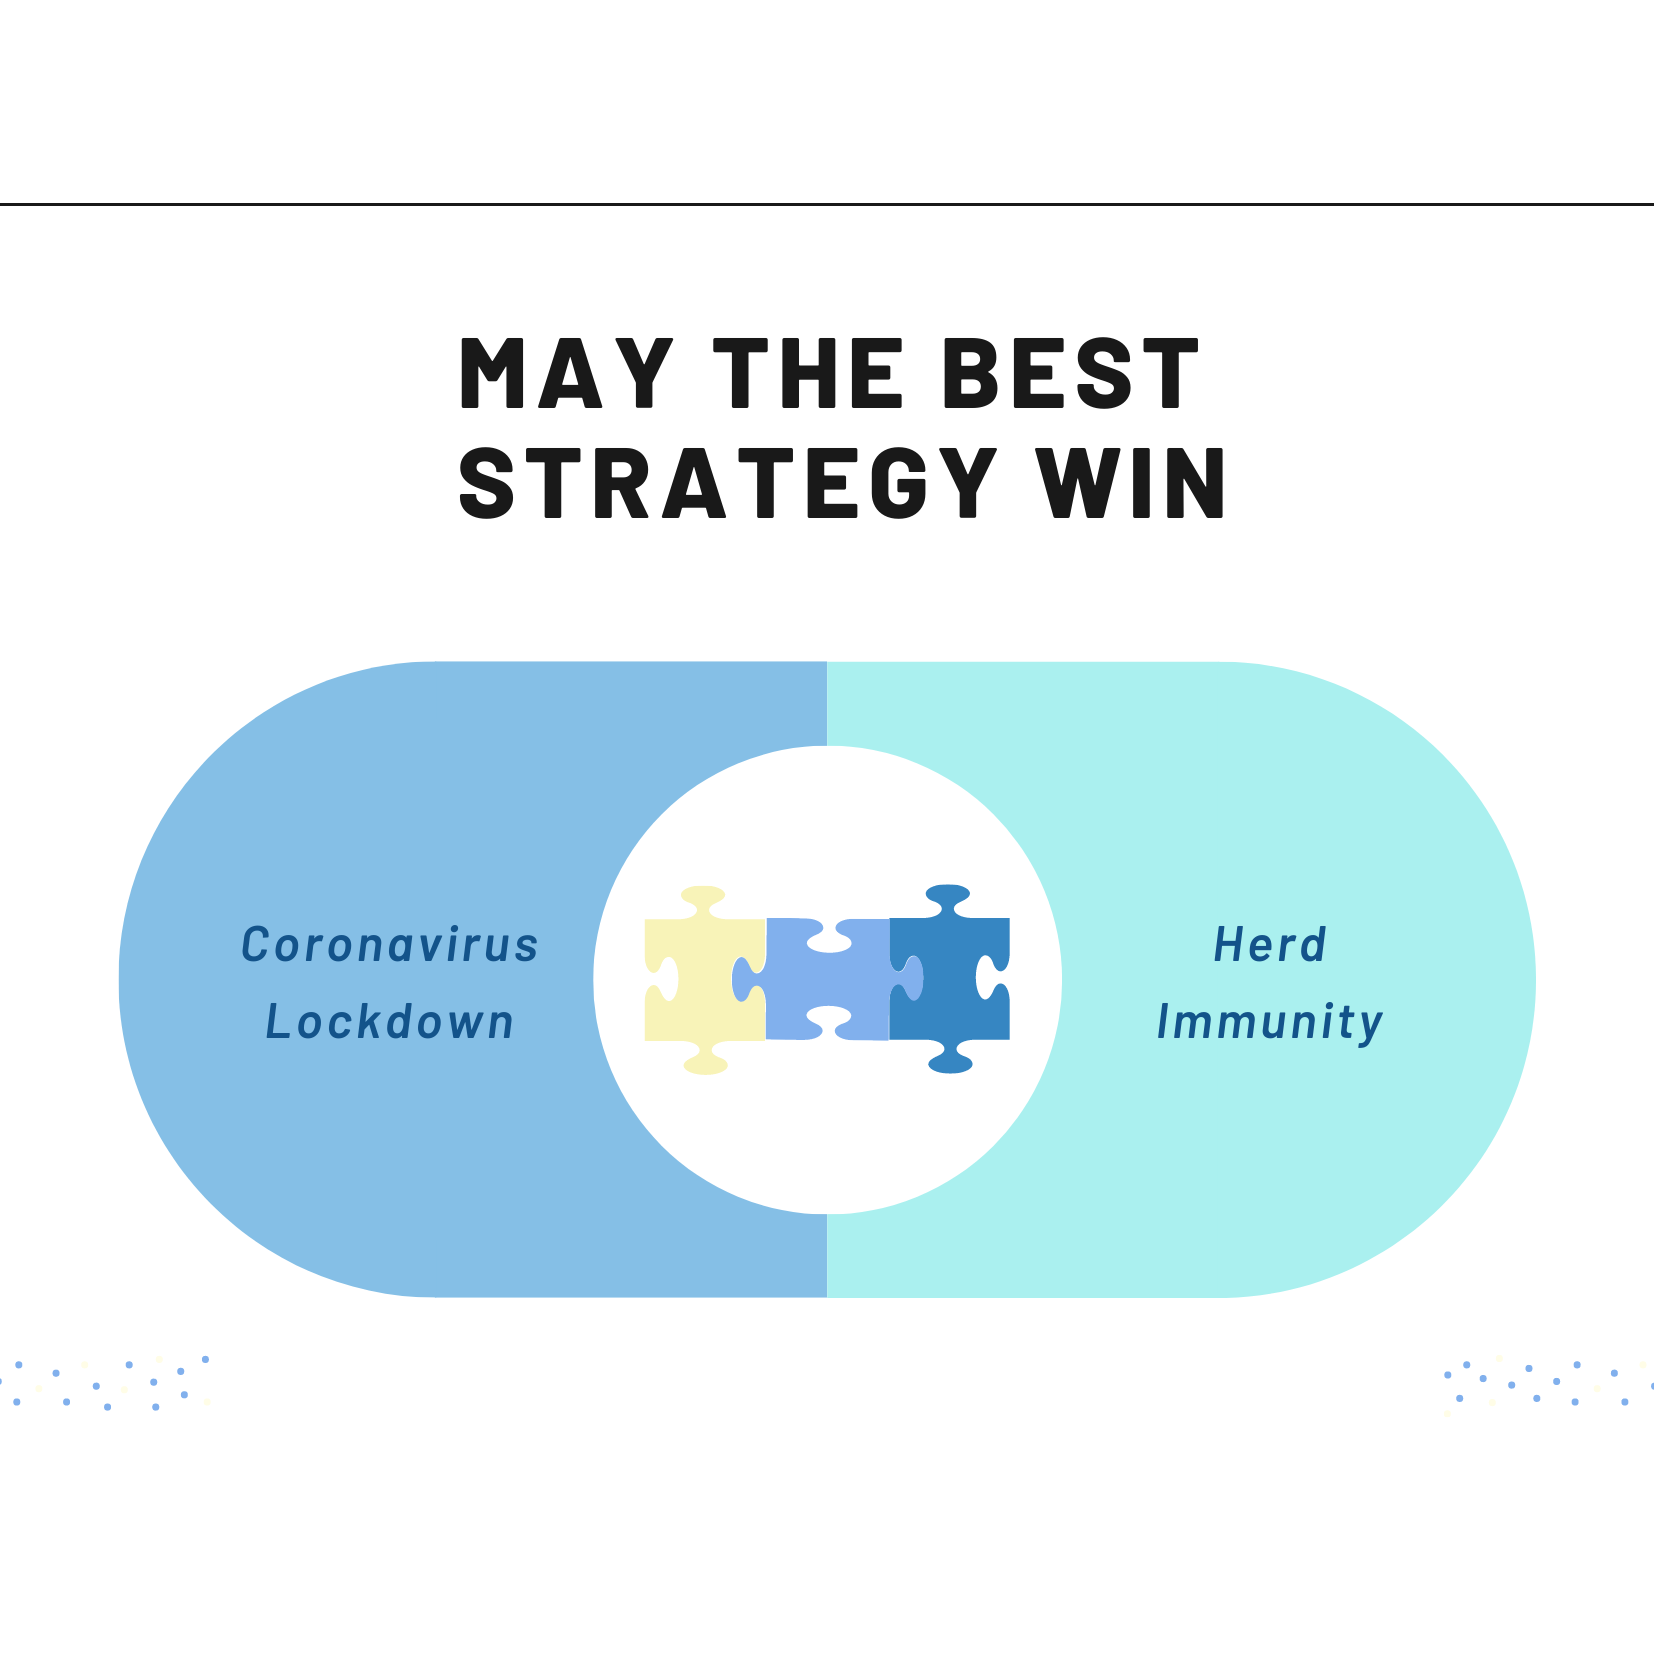 COVID-19: May the best strategy win.